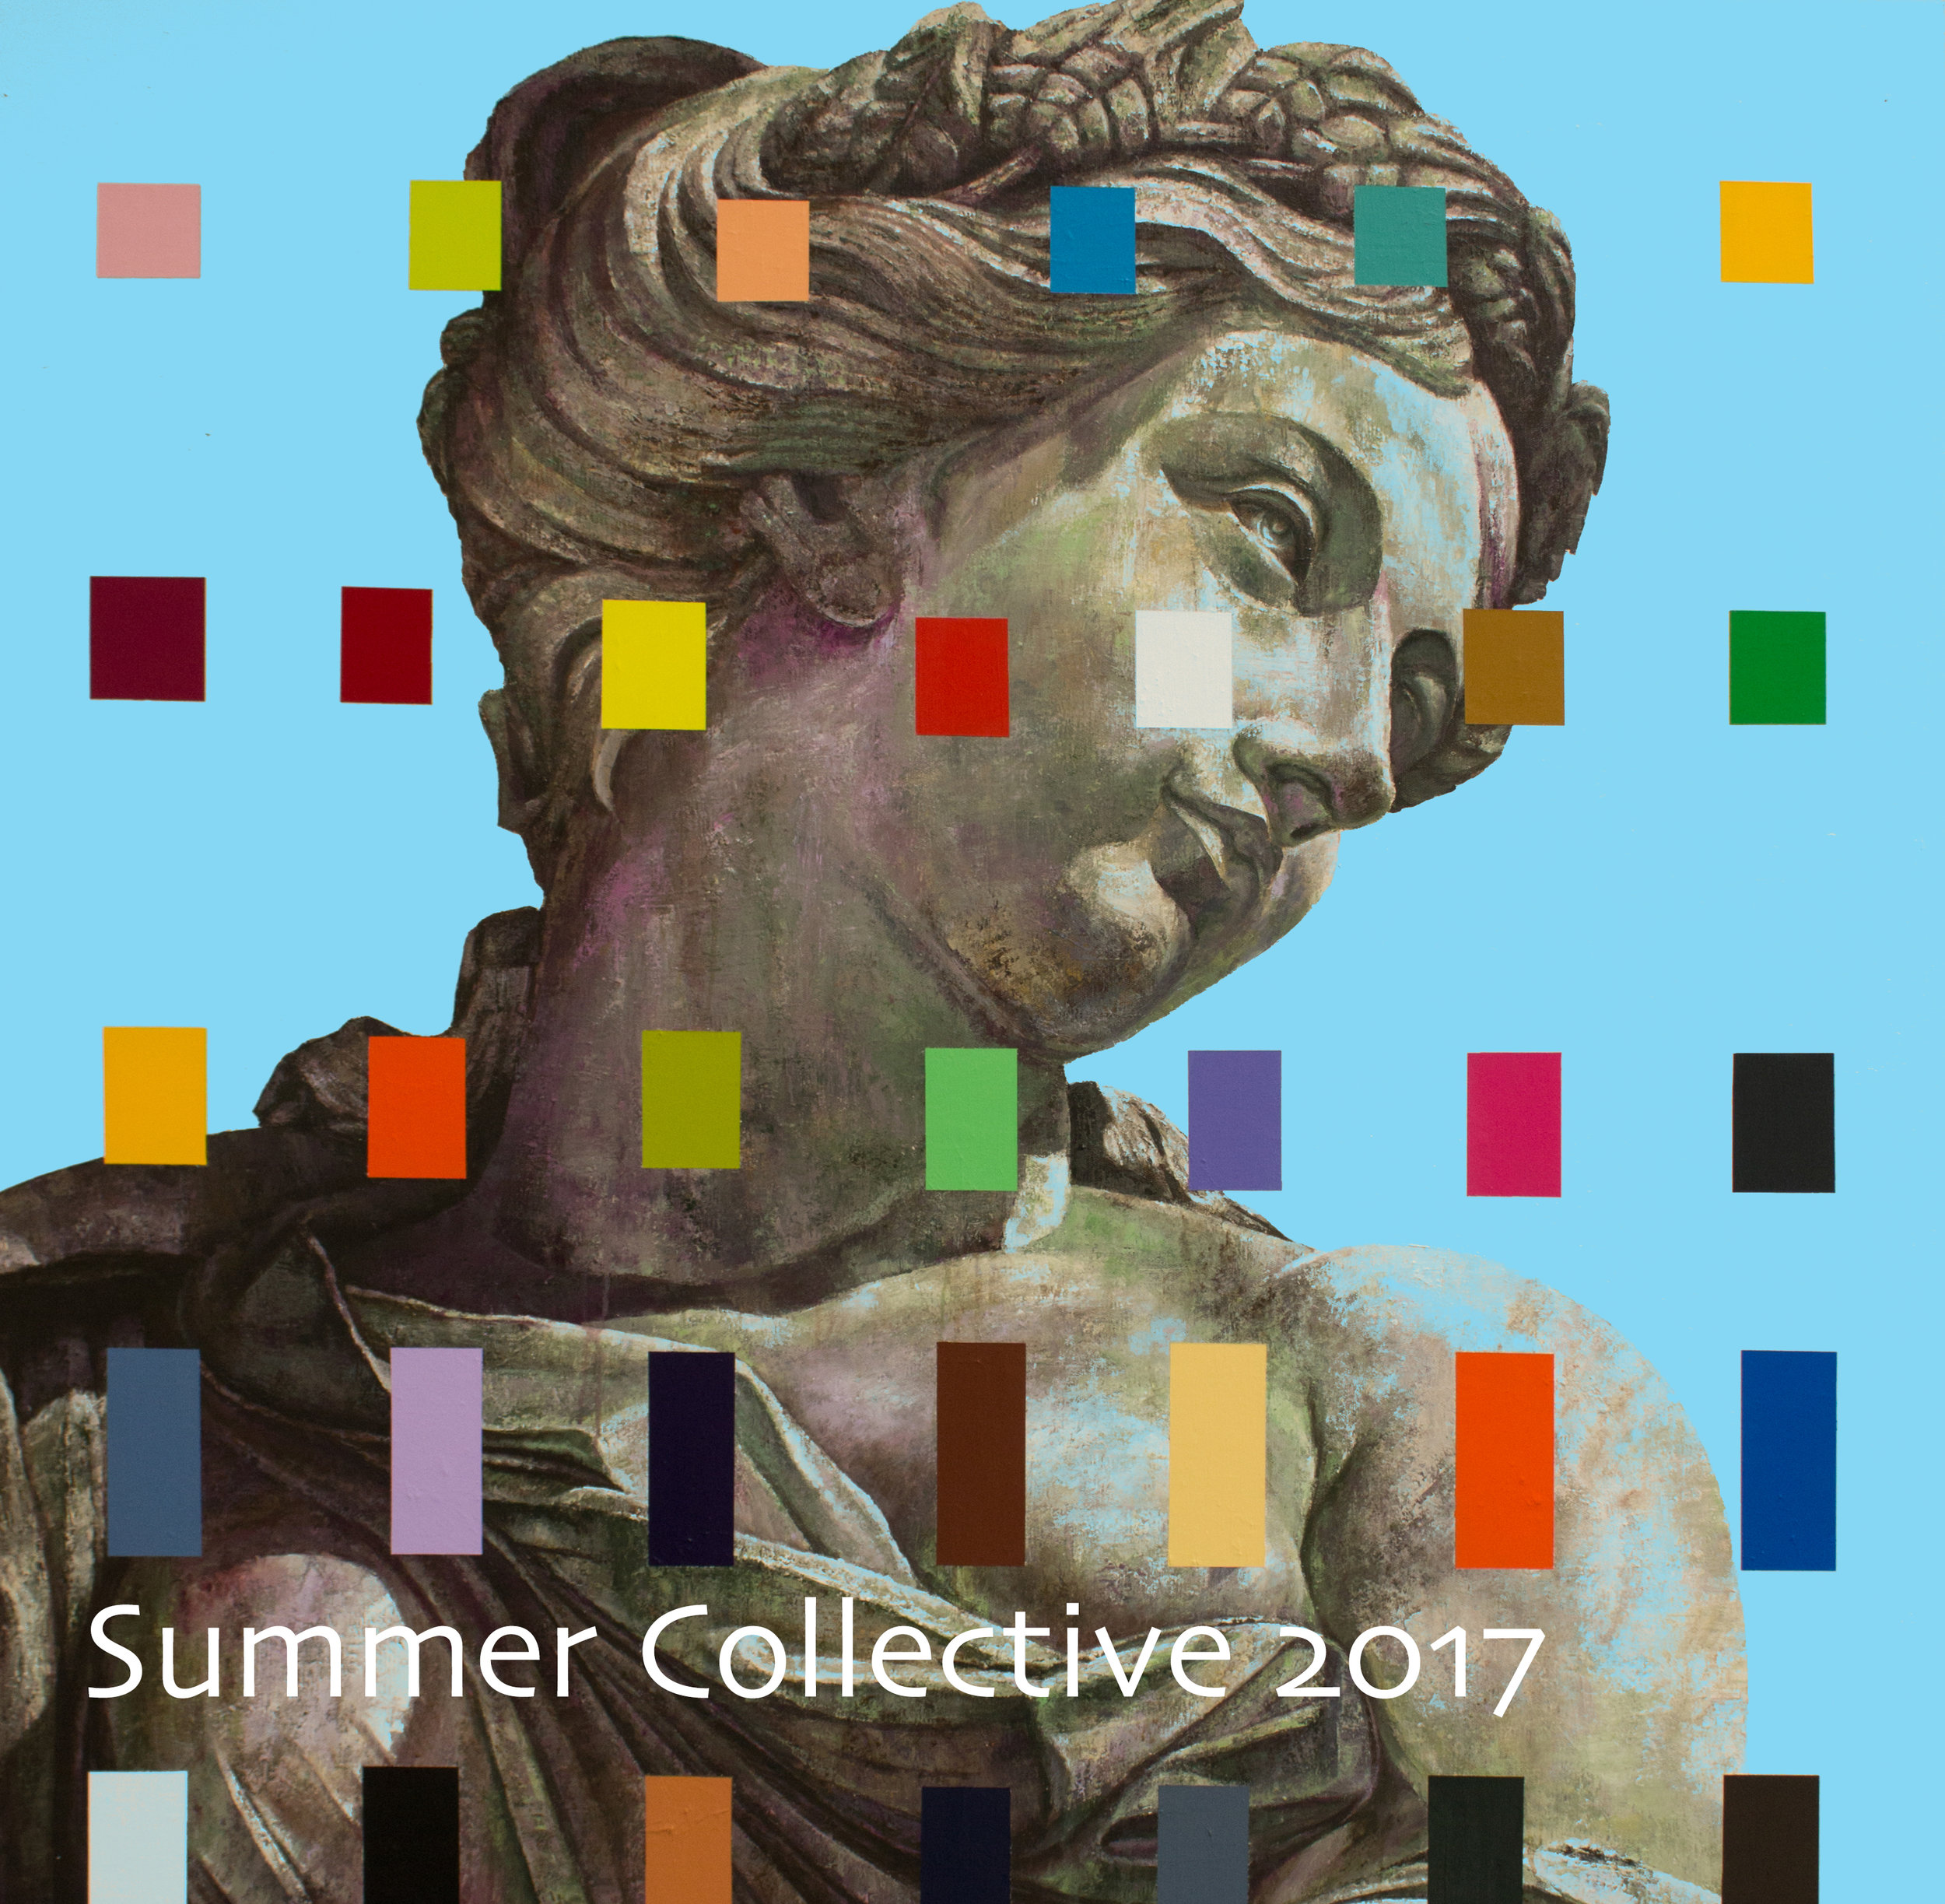 Summer Collective 2017